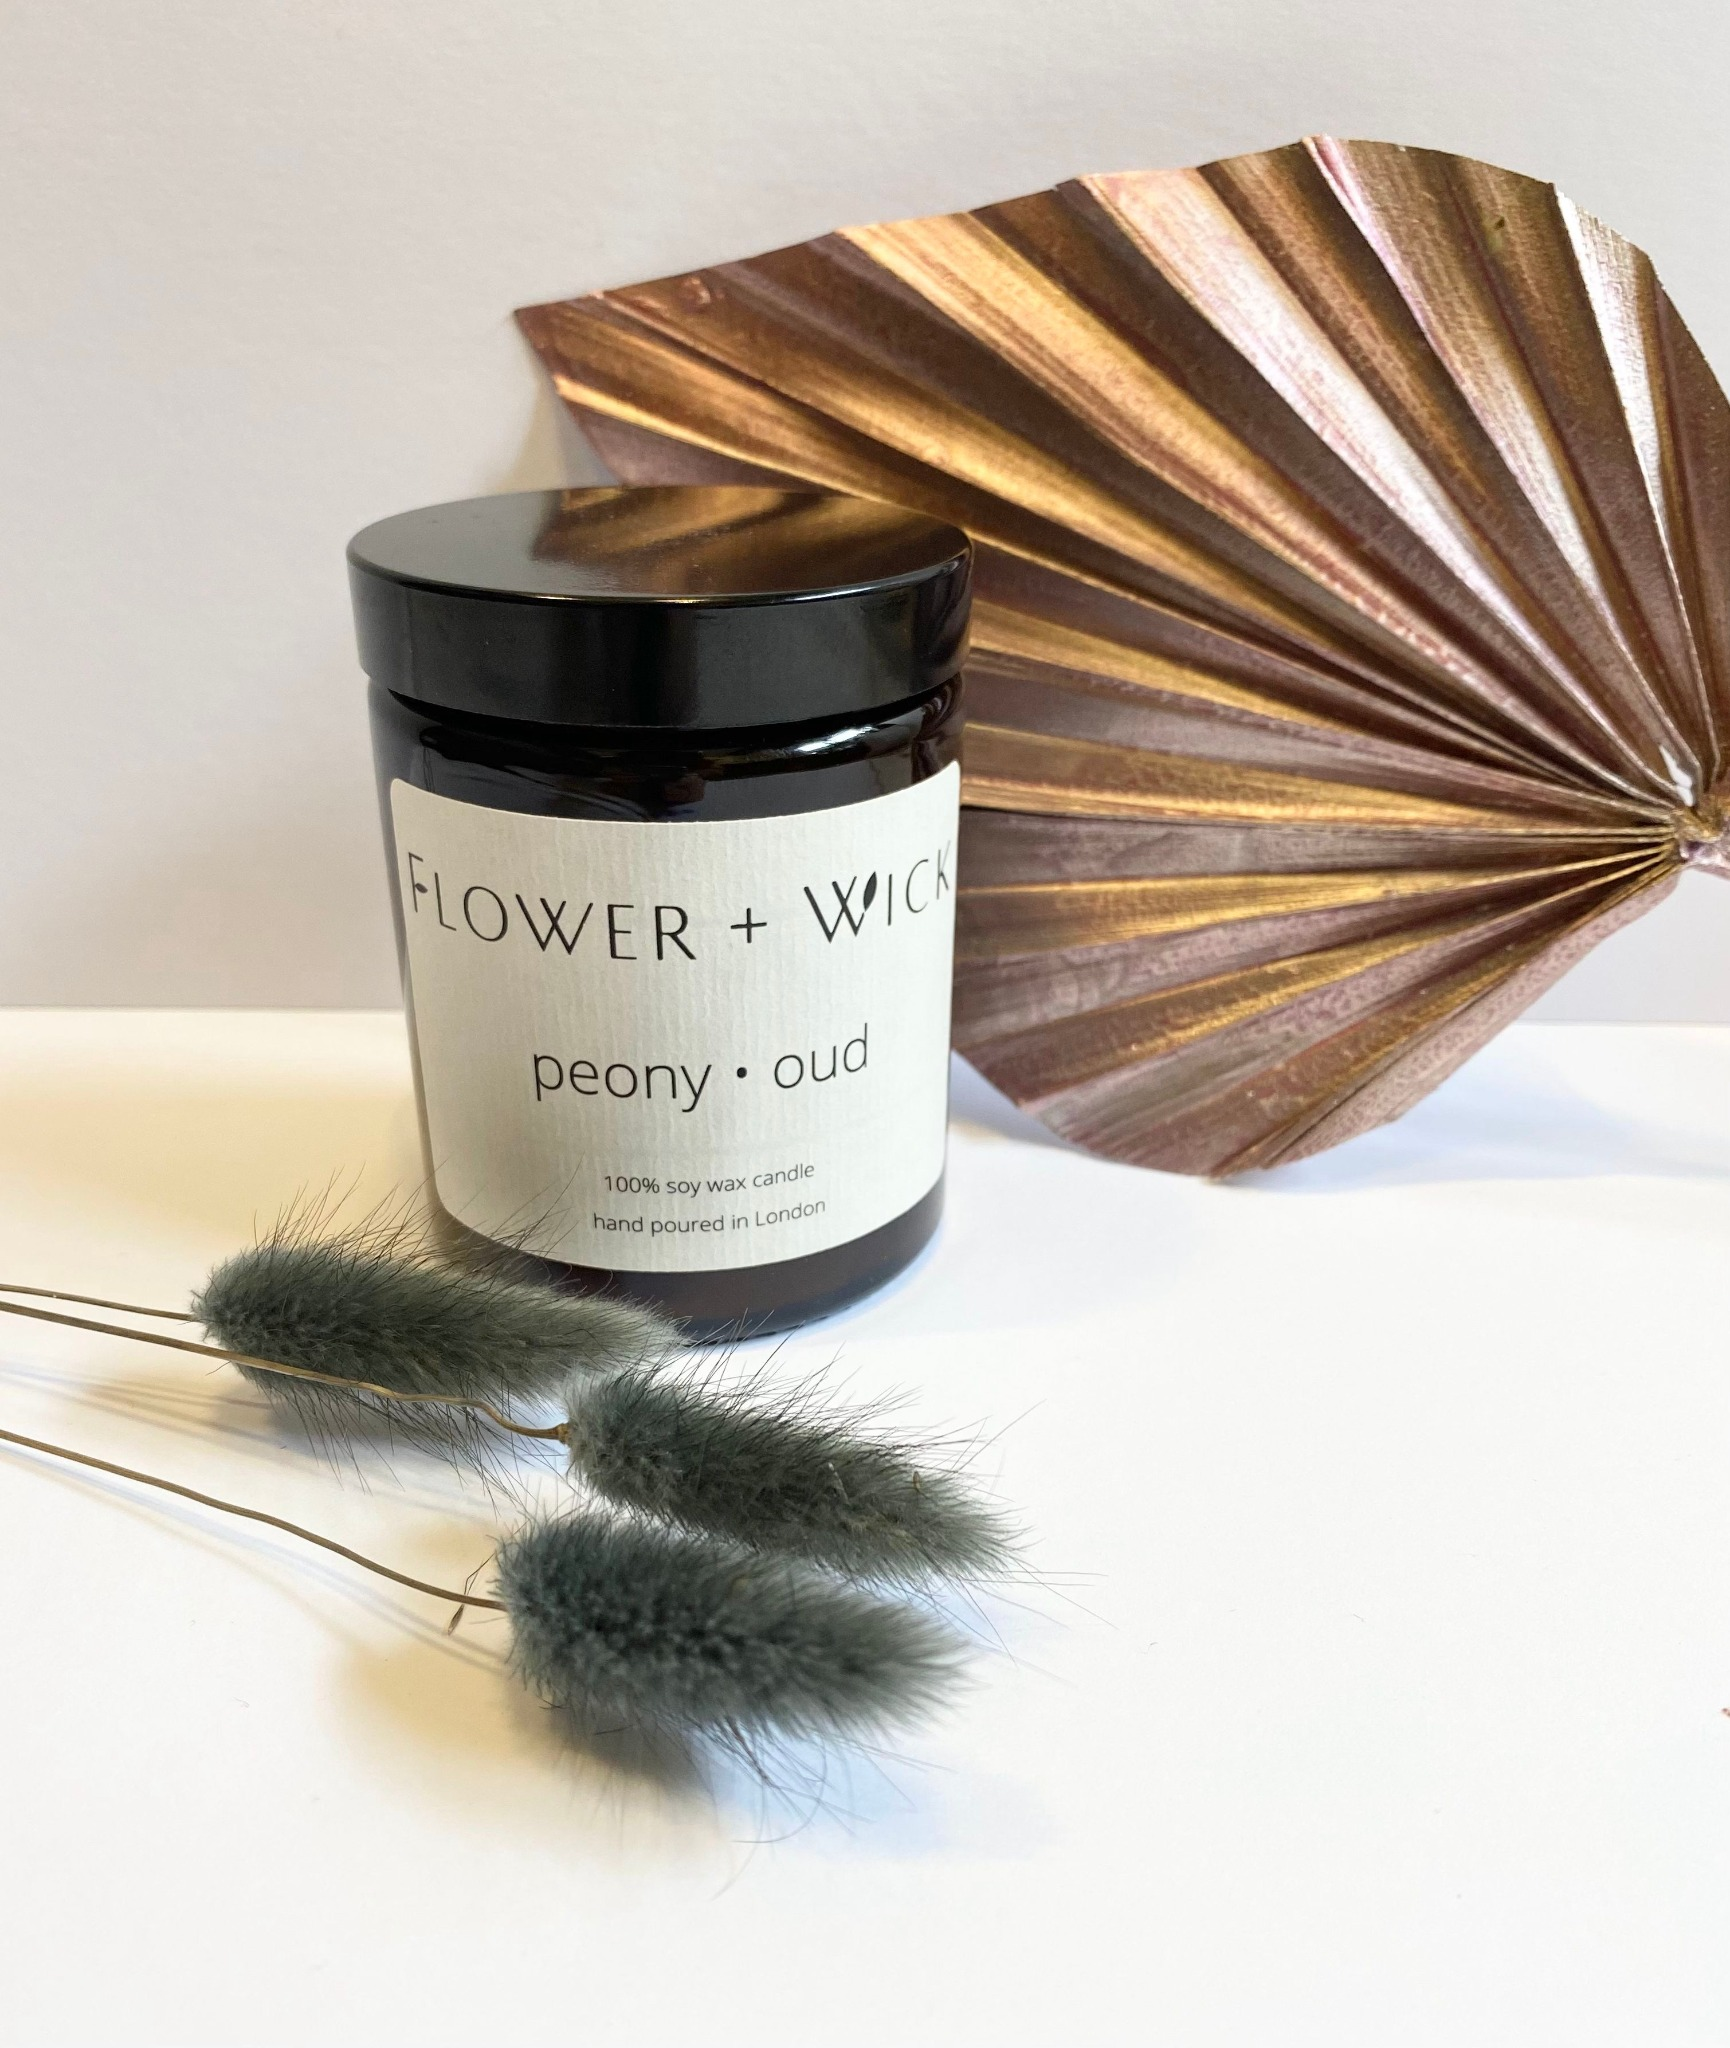 Flower + Wick: Peony and Oud scented soy candle